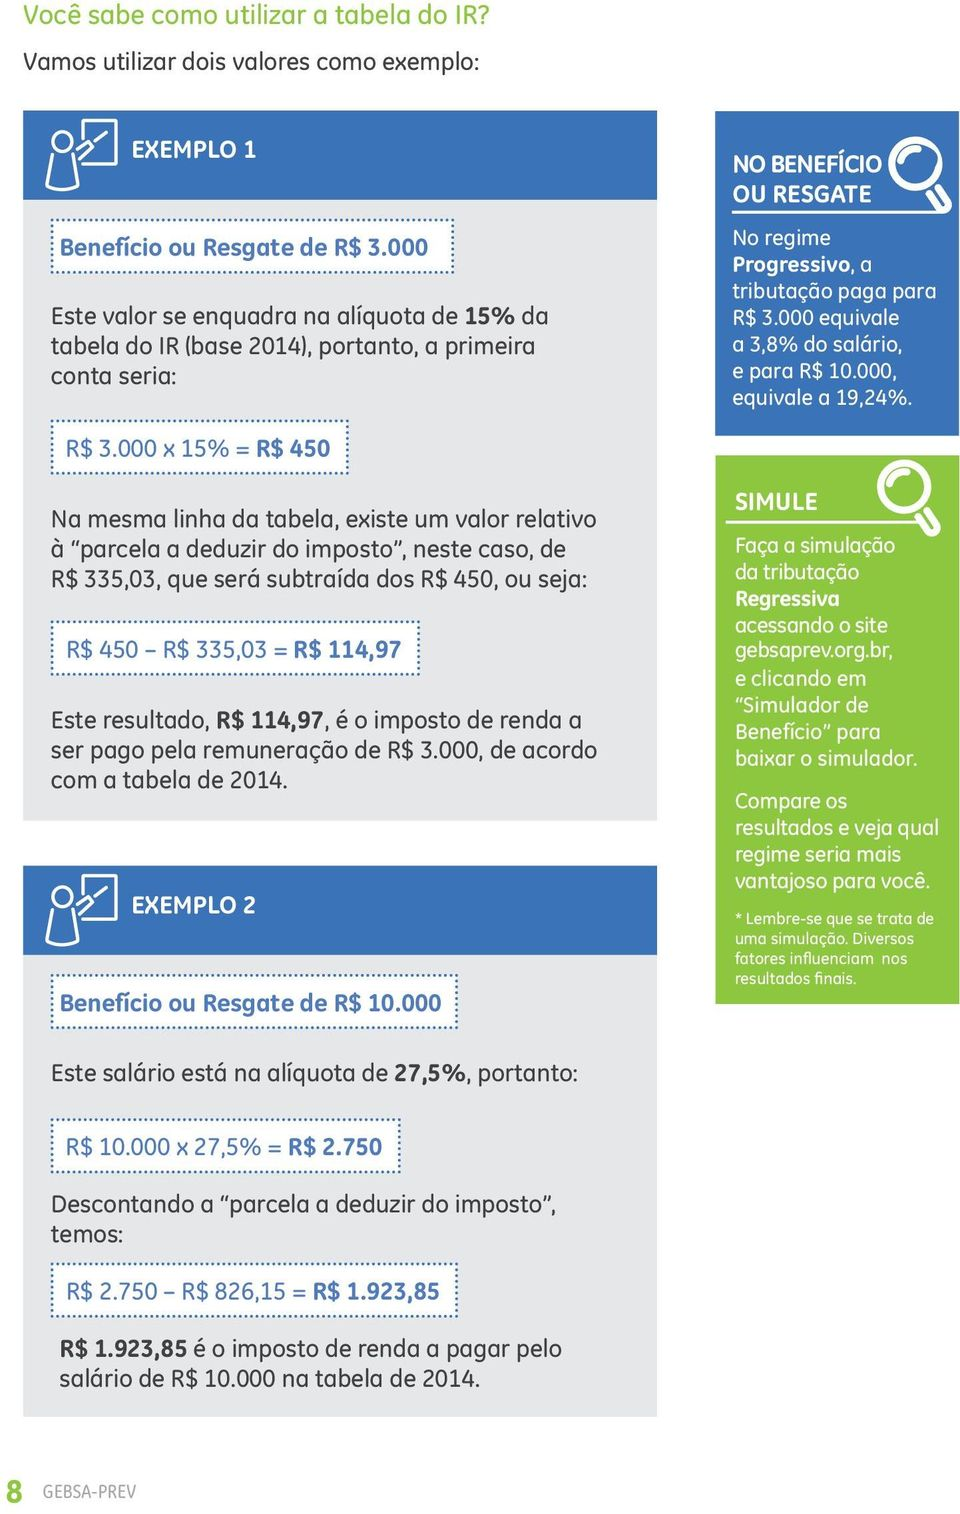 000 equivale a 3,8% do salário, e para R$ 10.000, equivale a 19,24%. R$ 3.